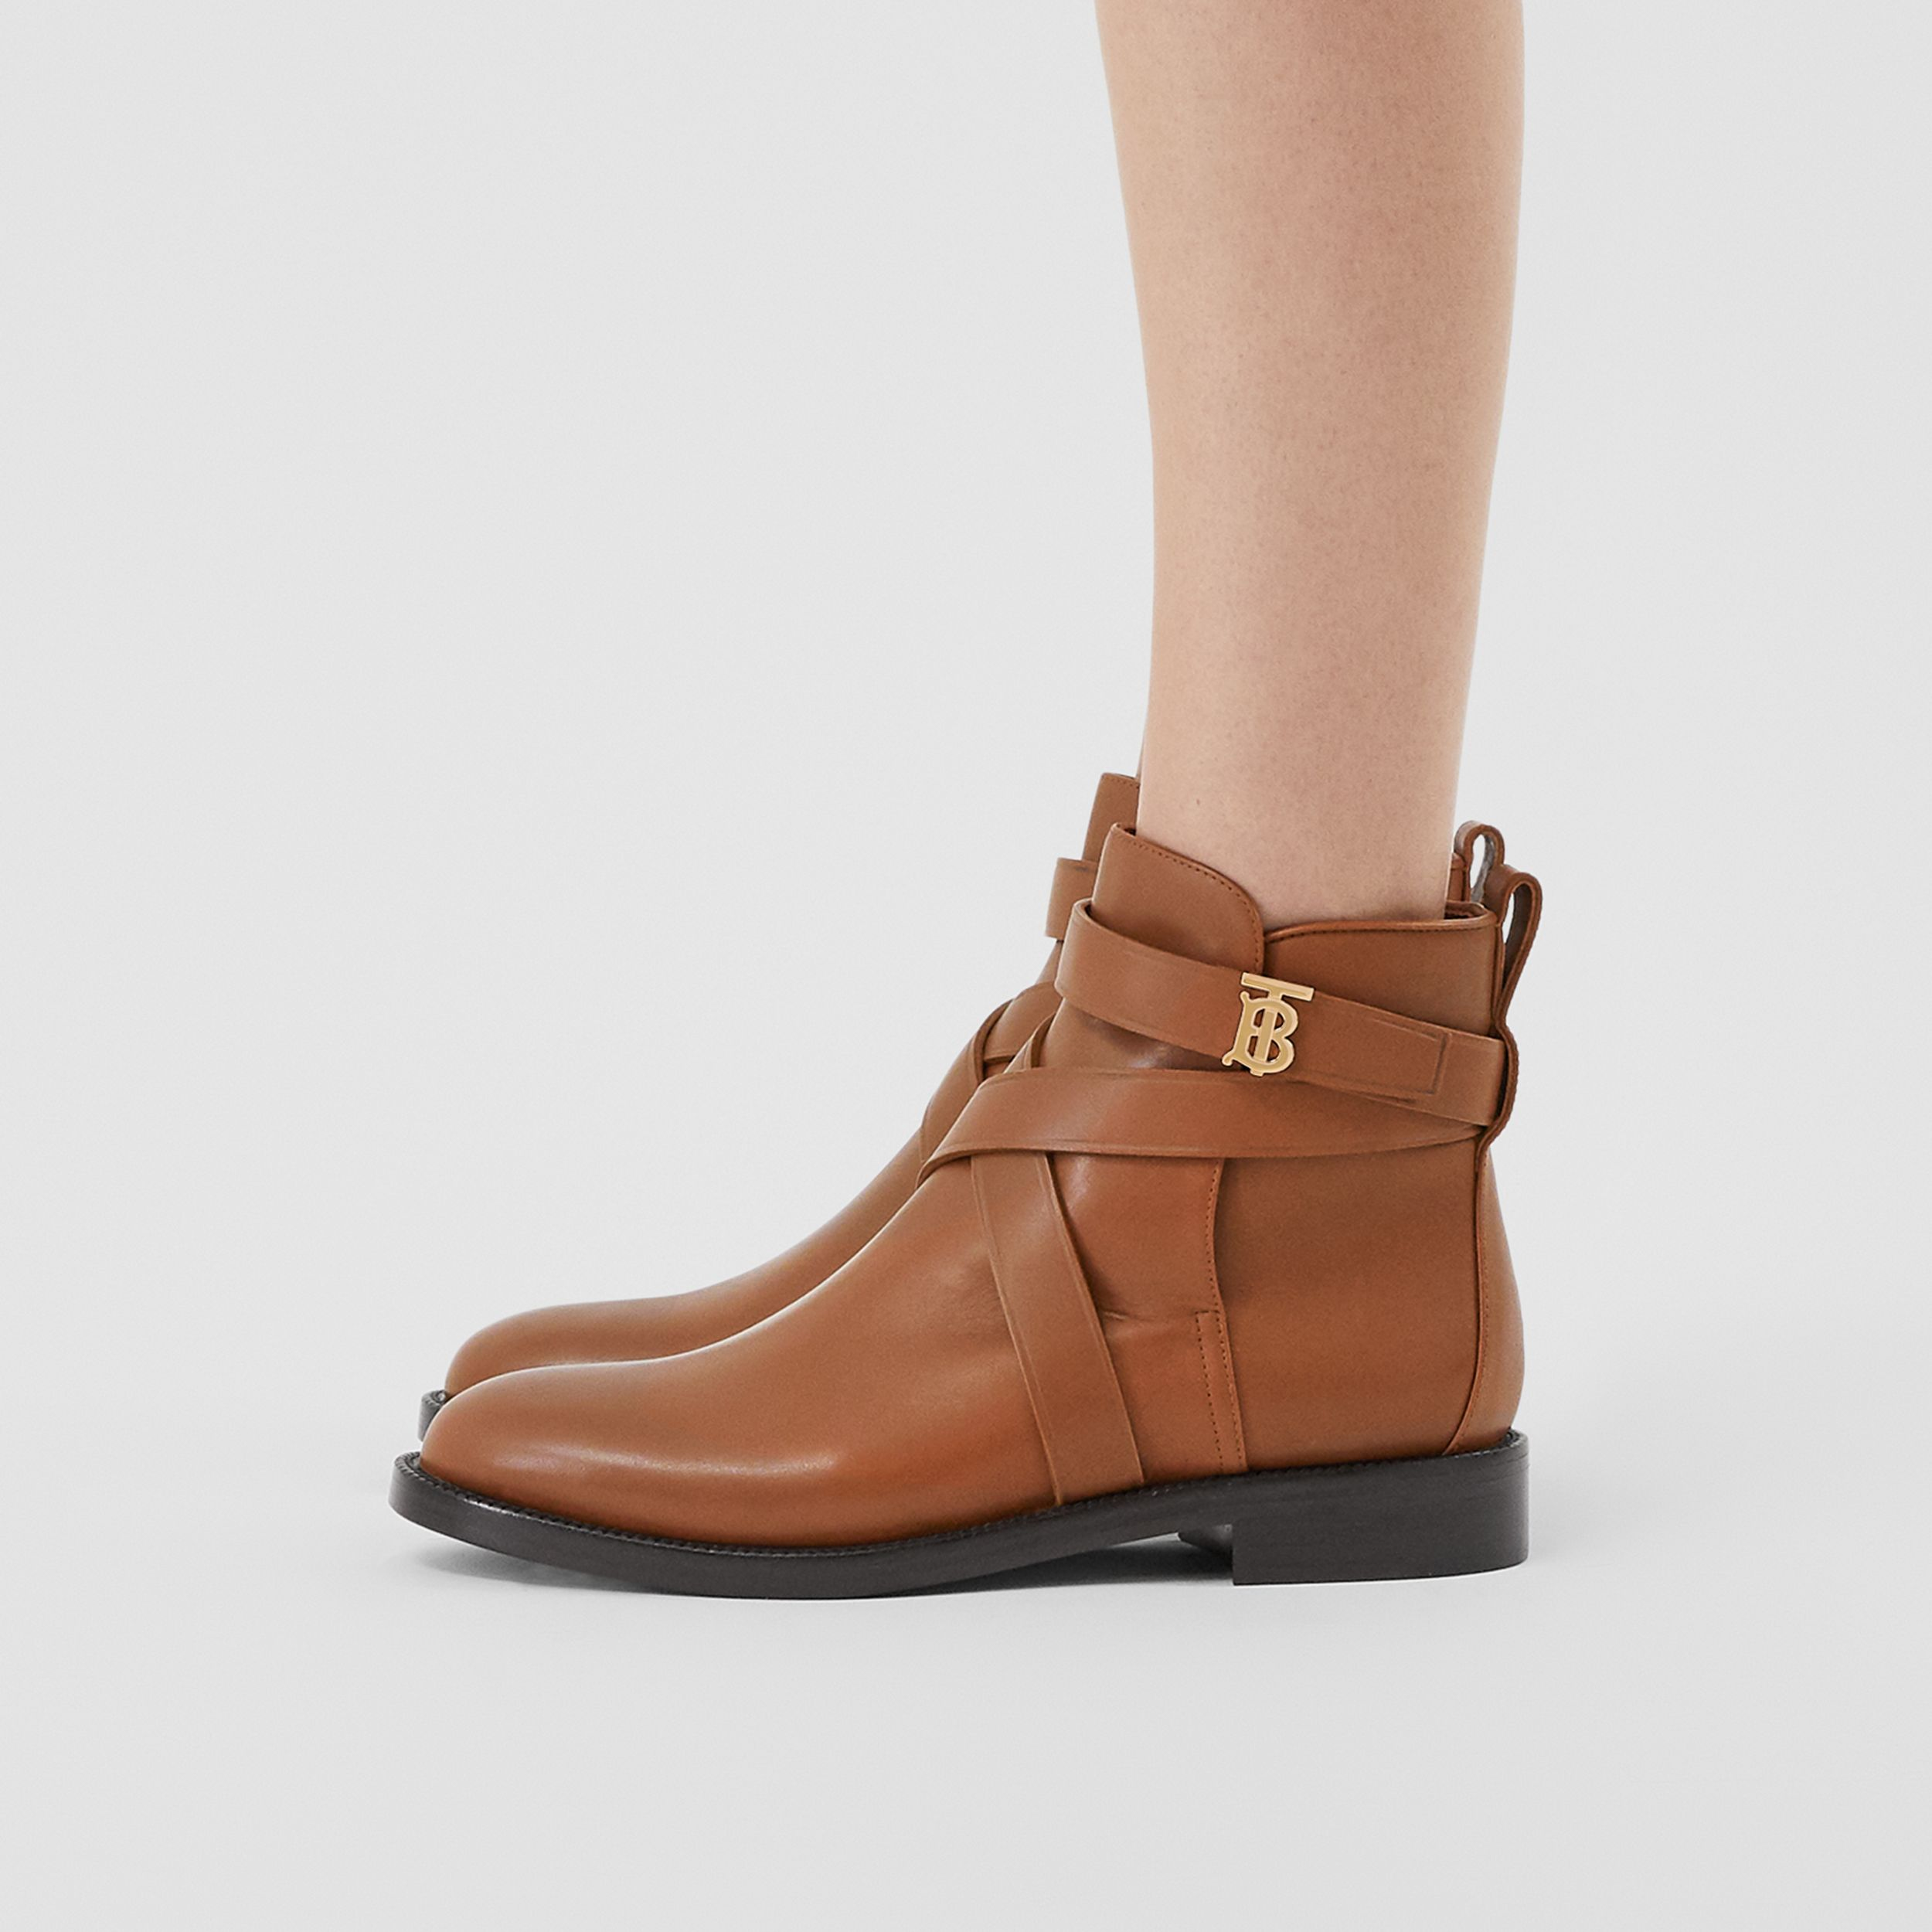 Monogram Motif Leather Ankle Boots in Tan - Women | Burberry Canada - 3